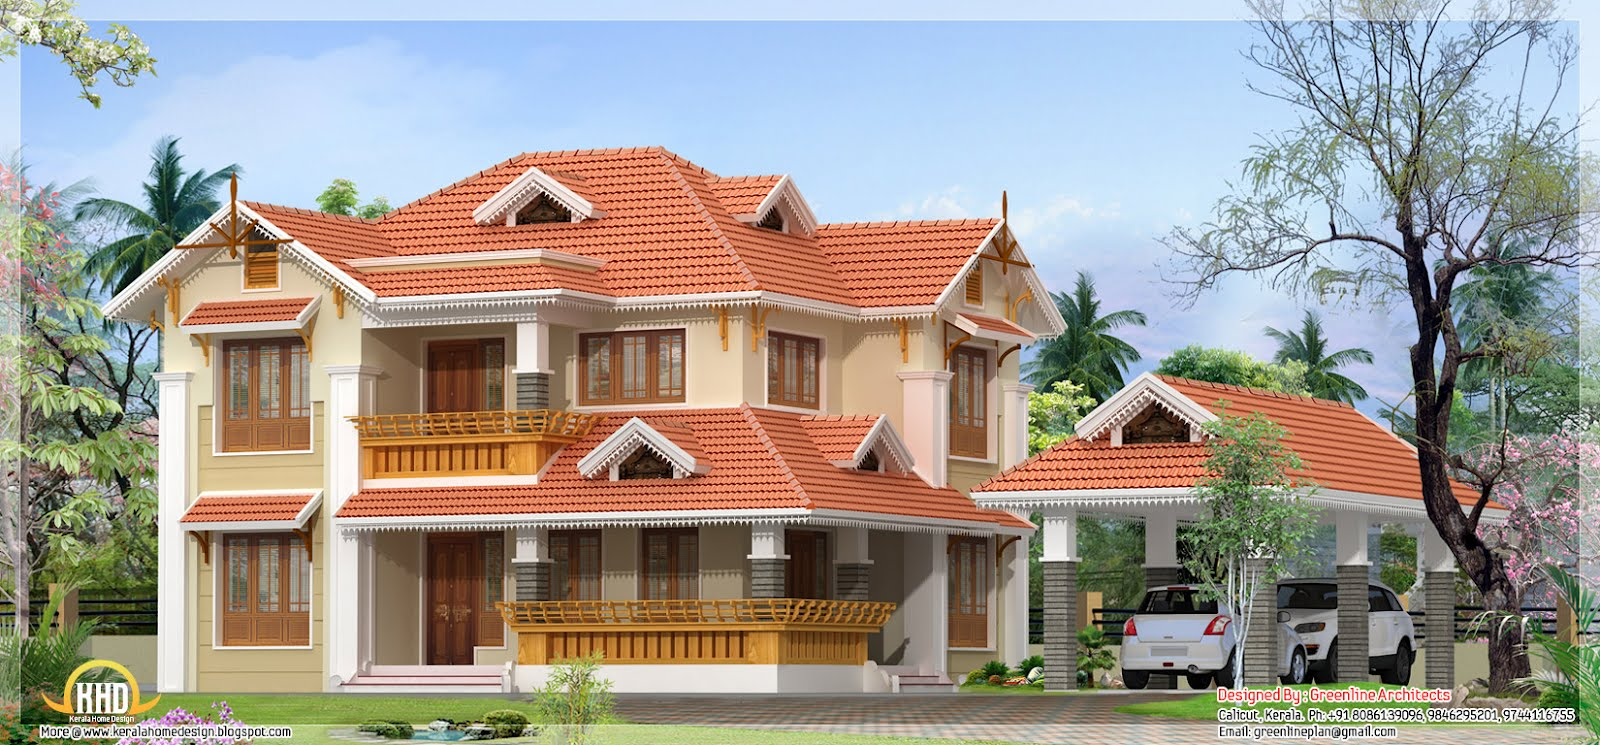 July 2012 kerala home design and floor plans for Residential remodeling